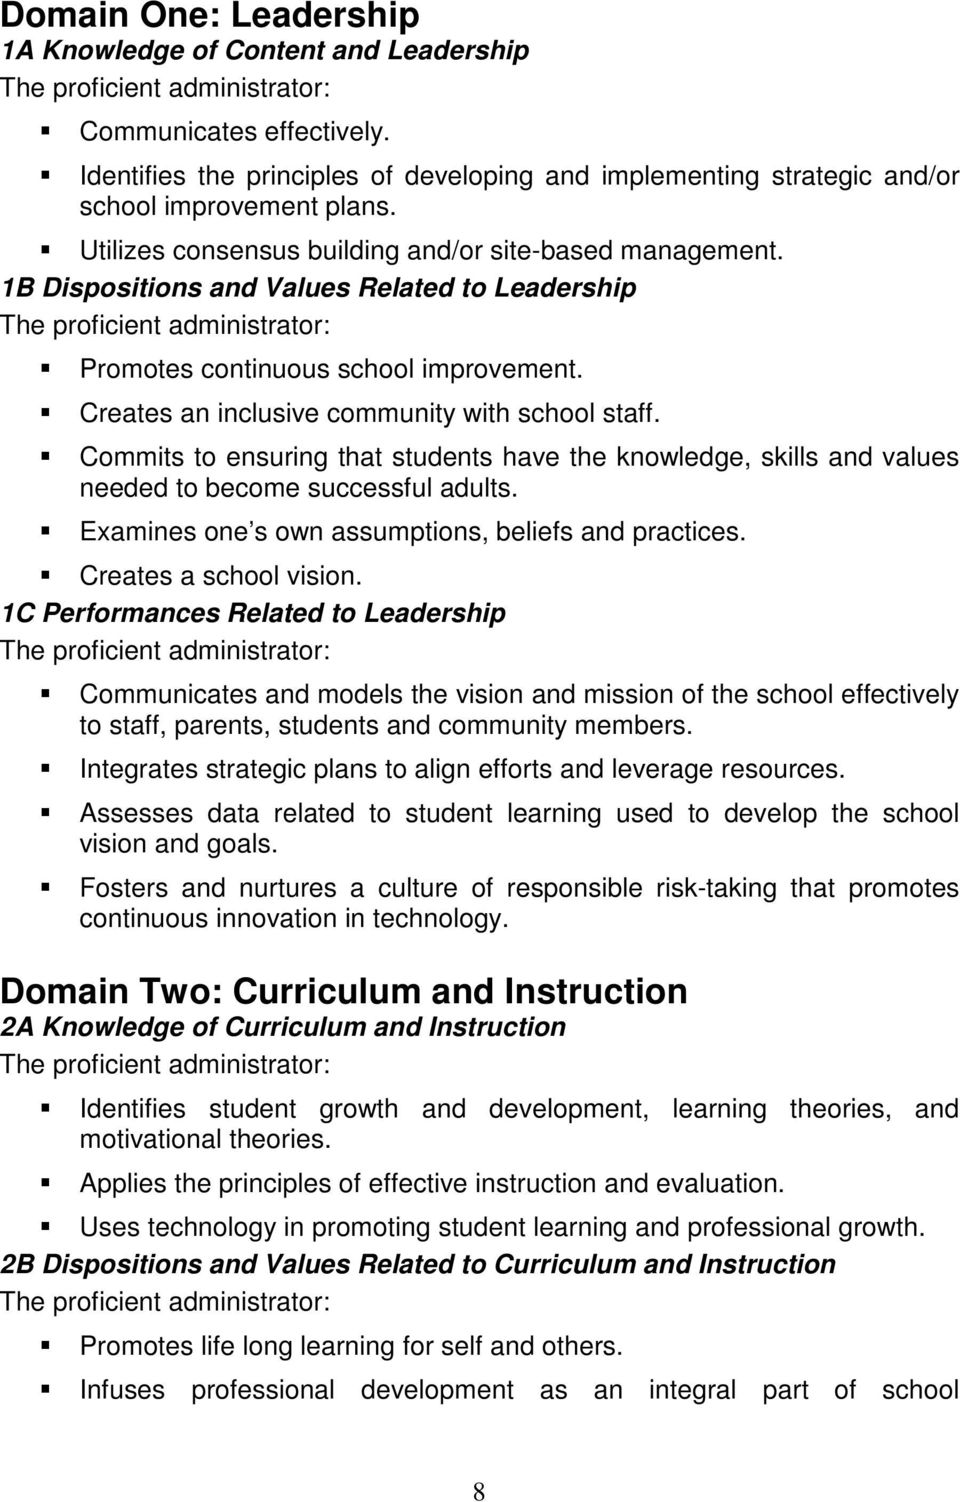 1B Dispositions and Values Related to Leadership The proficient administrator: Promotes continuous school improvement. Creates an inclusive community with school staff.